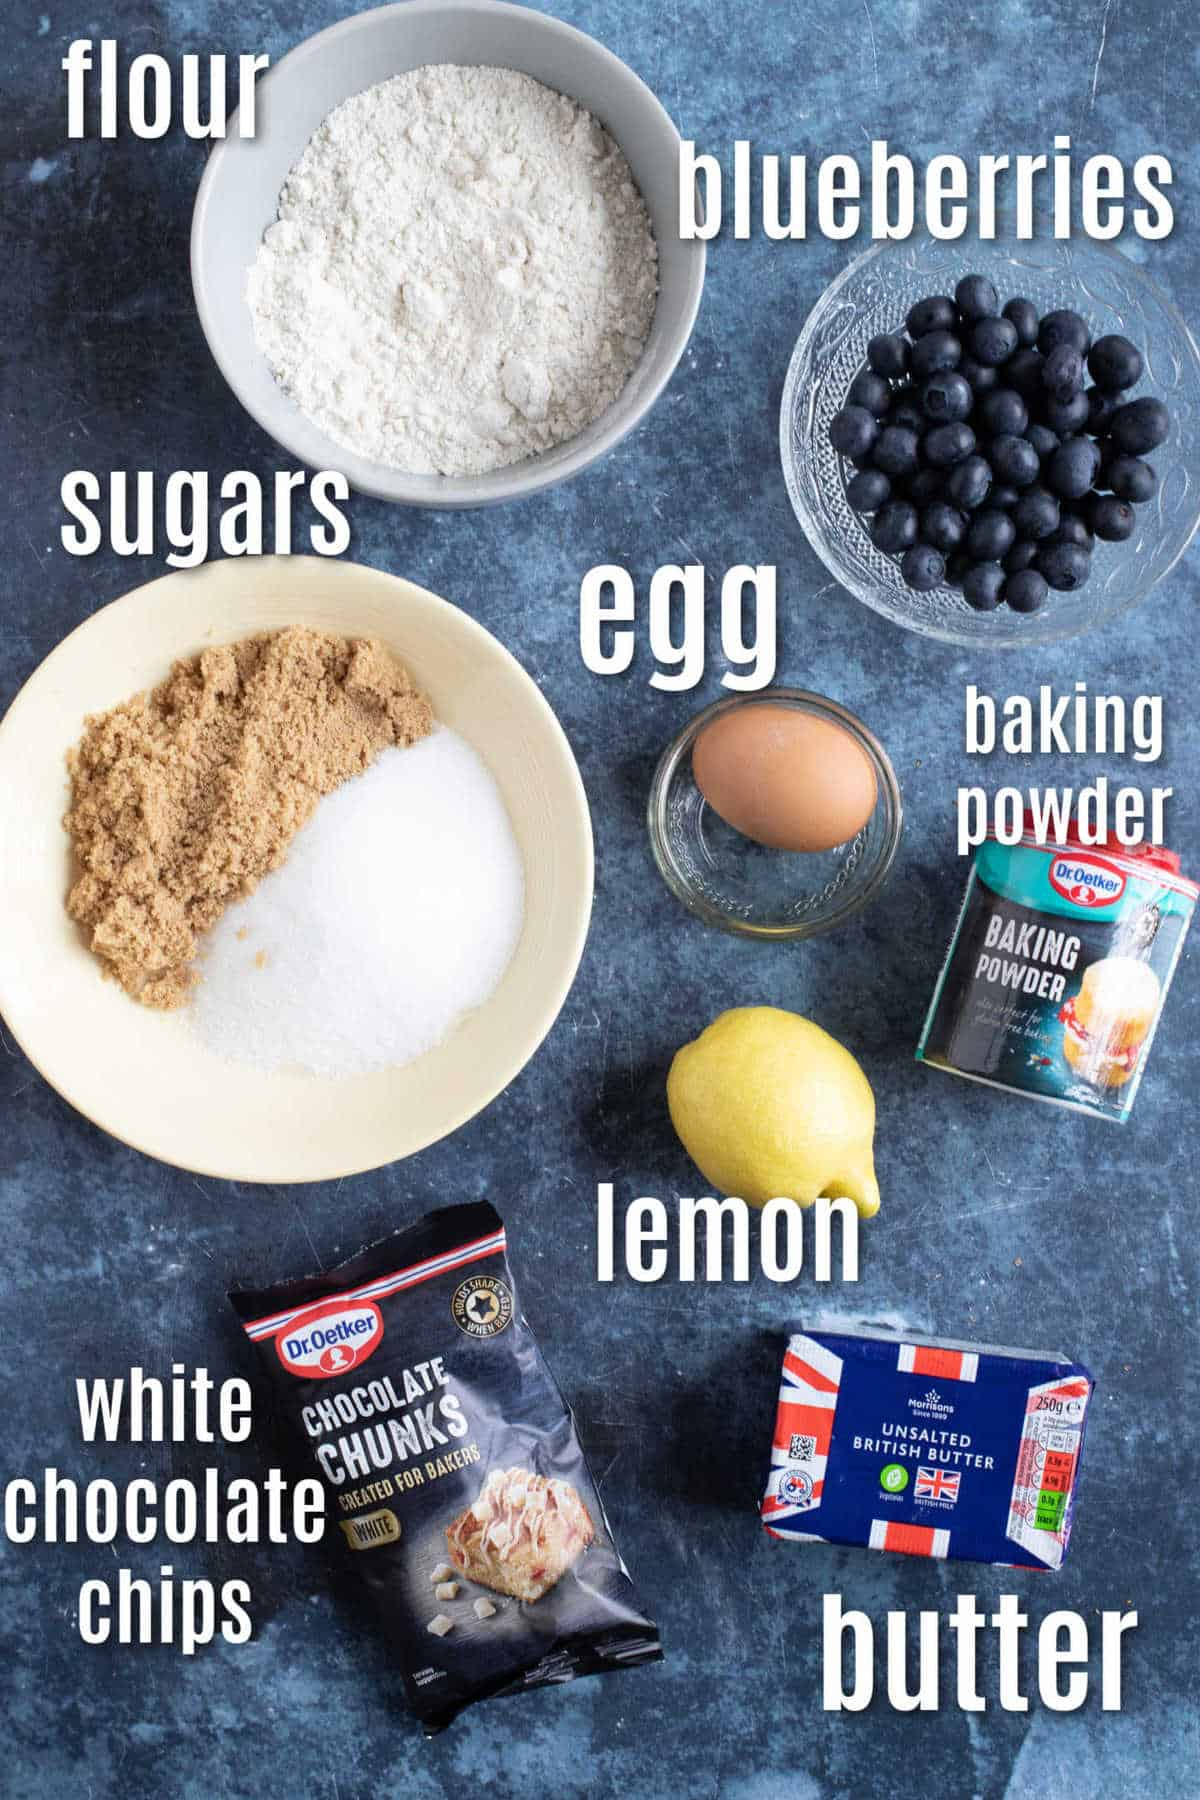 Ingredients for lemon and blueberry blondies.